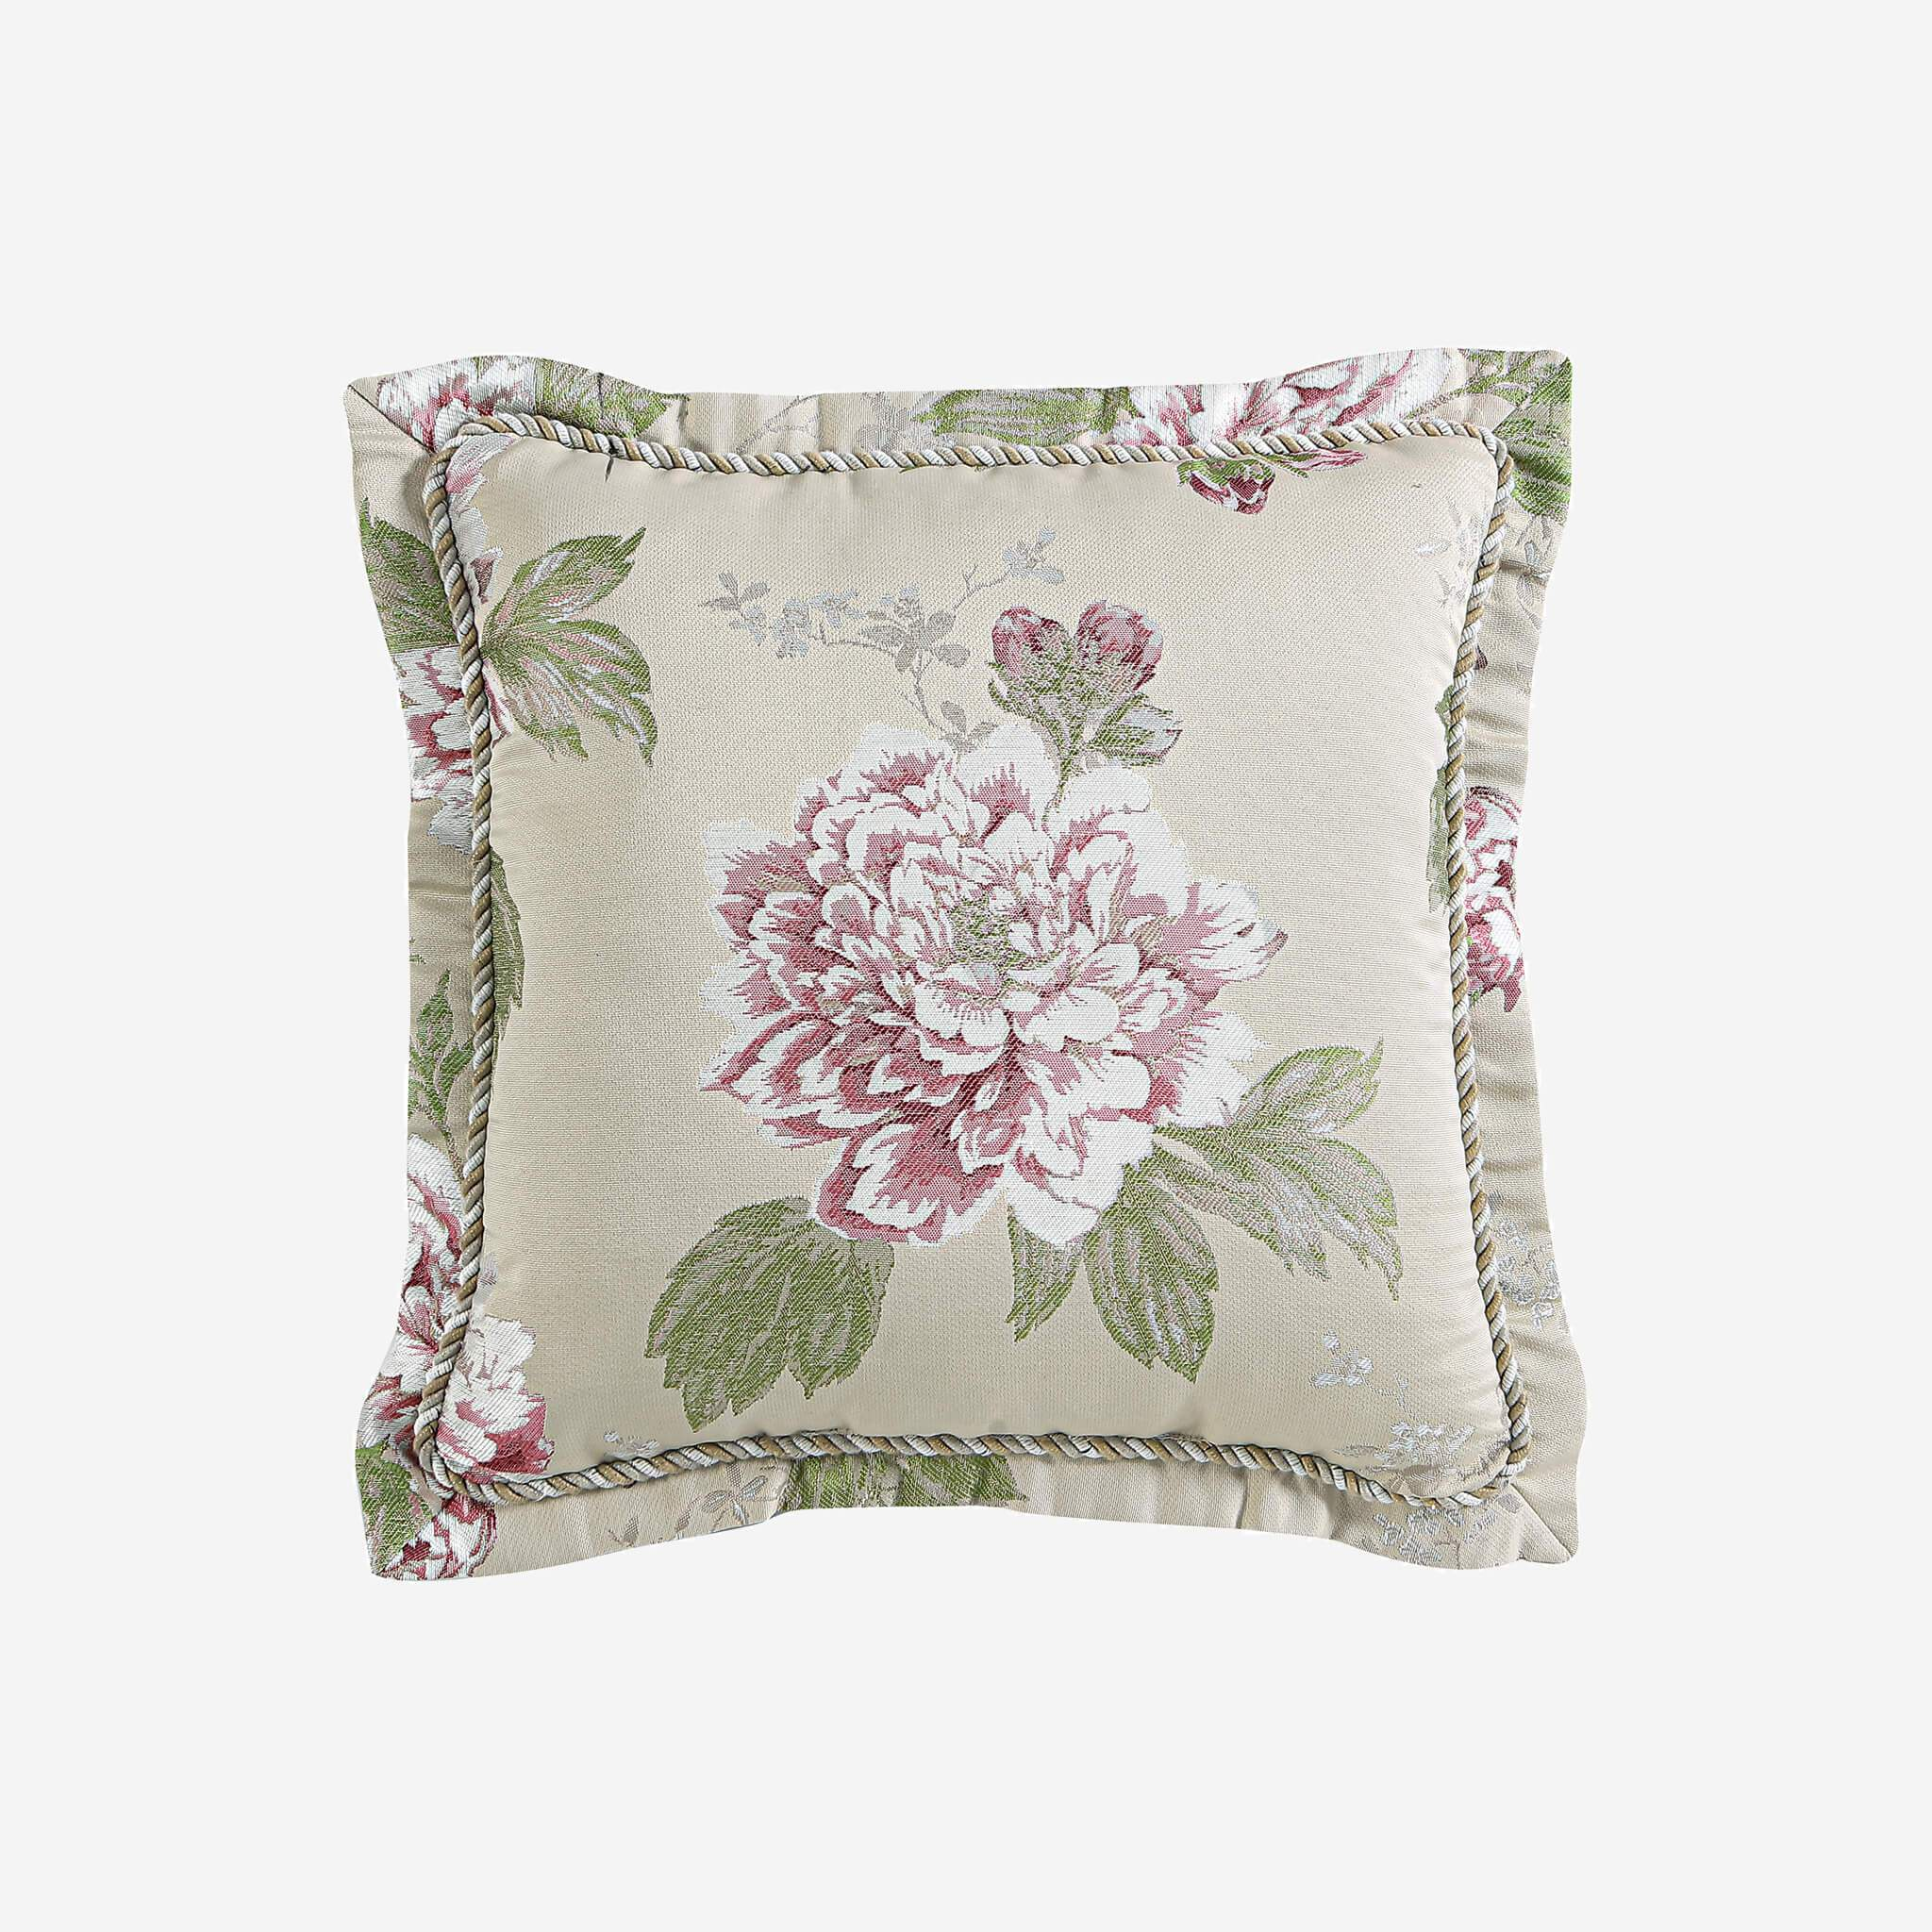 "Everly 20"" x 20"" Square Pillow"